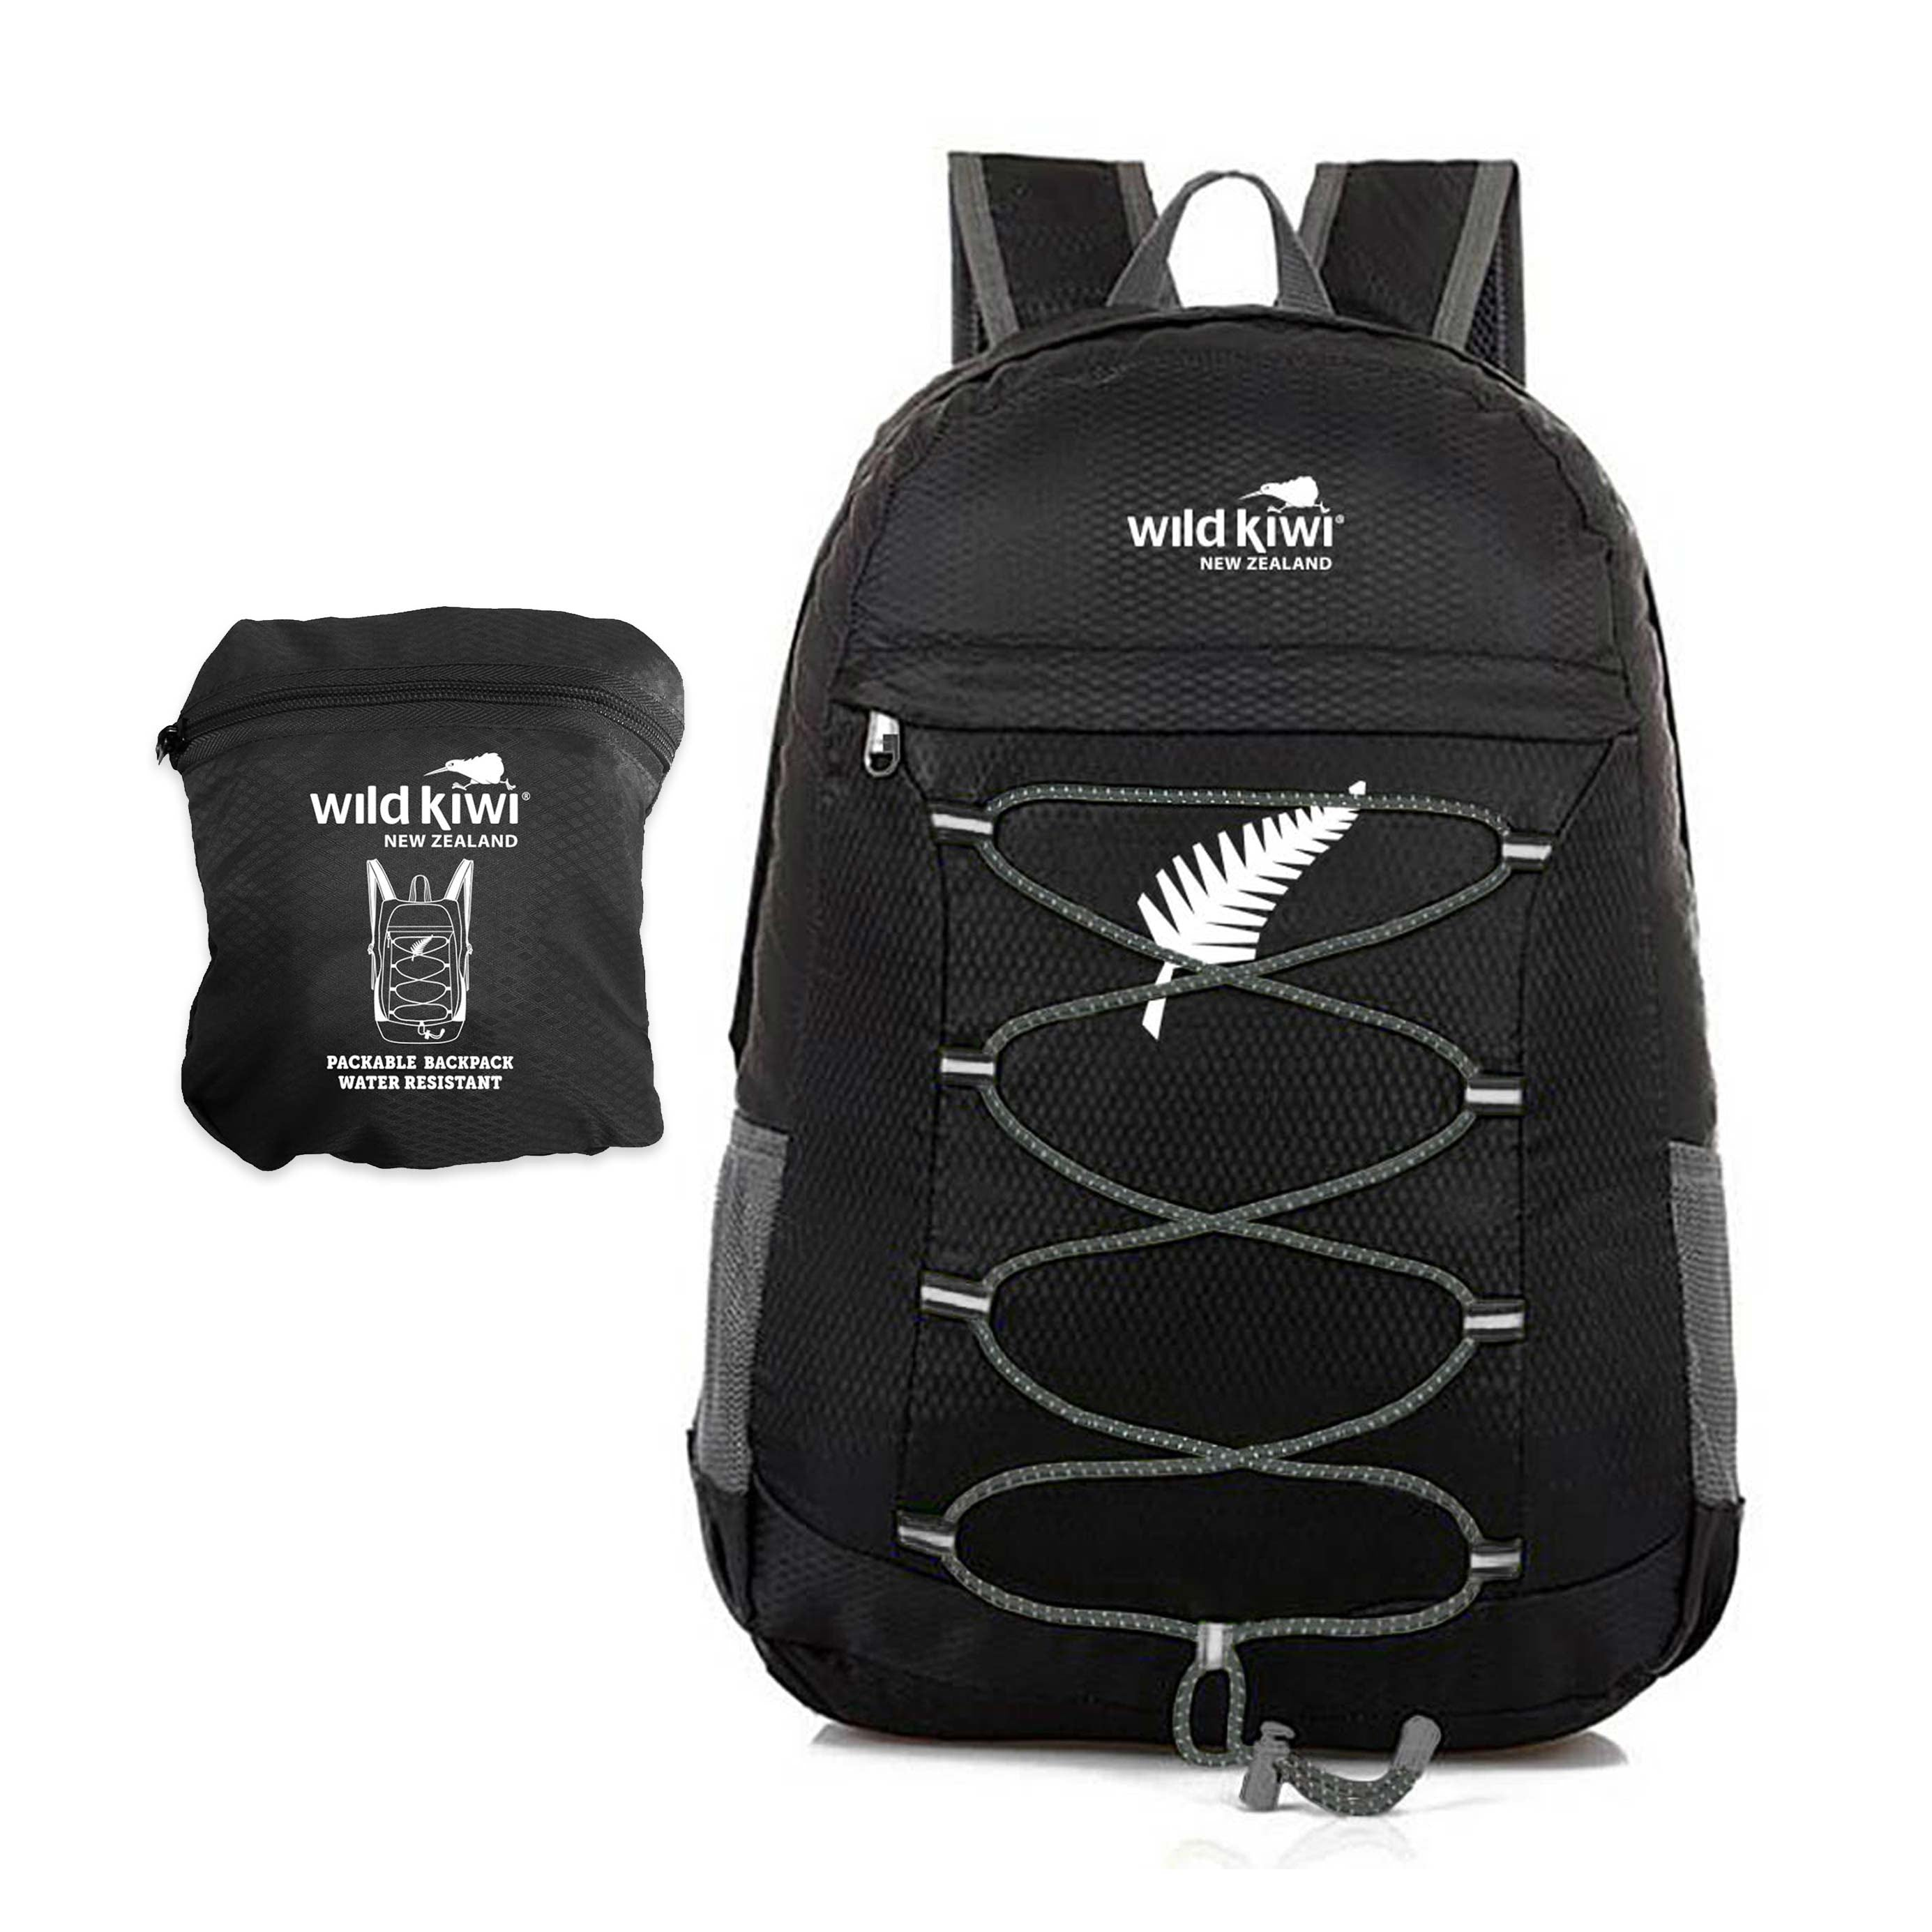 66323fbdc7a9 Black Backpack. Packable daypack. Water resistant. New Zealand.  wildkiwiclothing.co.